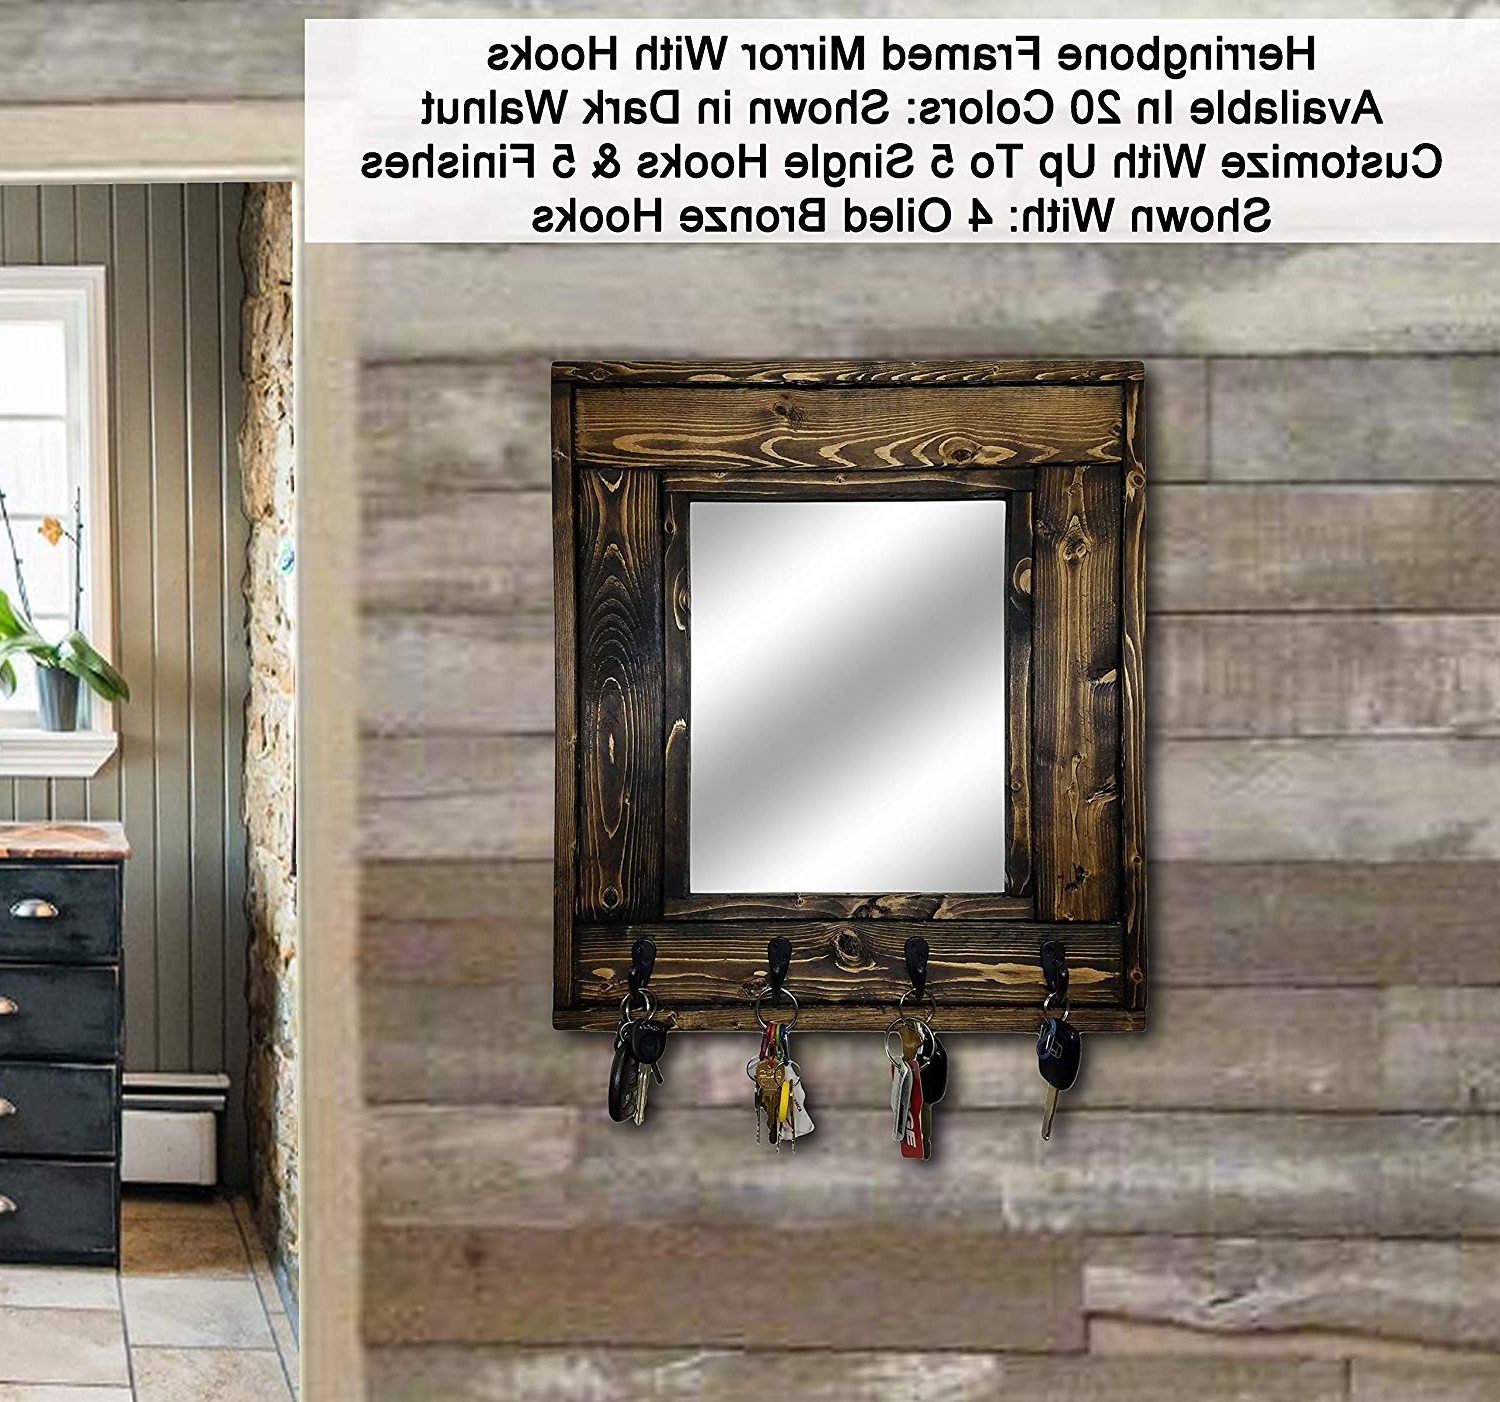 Wall Mirrors With Hooks With Most Recent Herringbone Mirror With Hooks – Customize With Up To 5 Single Hooks – Shown In Dark Walnut – Rustic Decor – Decorative Mirror – Hanging Hooks – Coat (View 13 of 20)